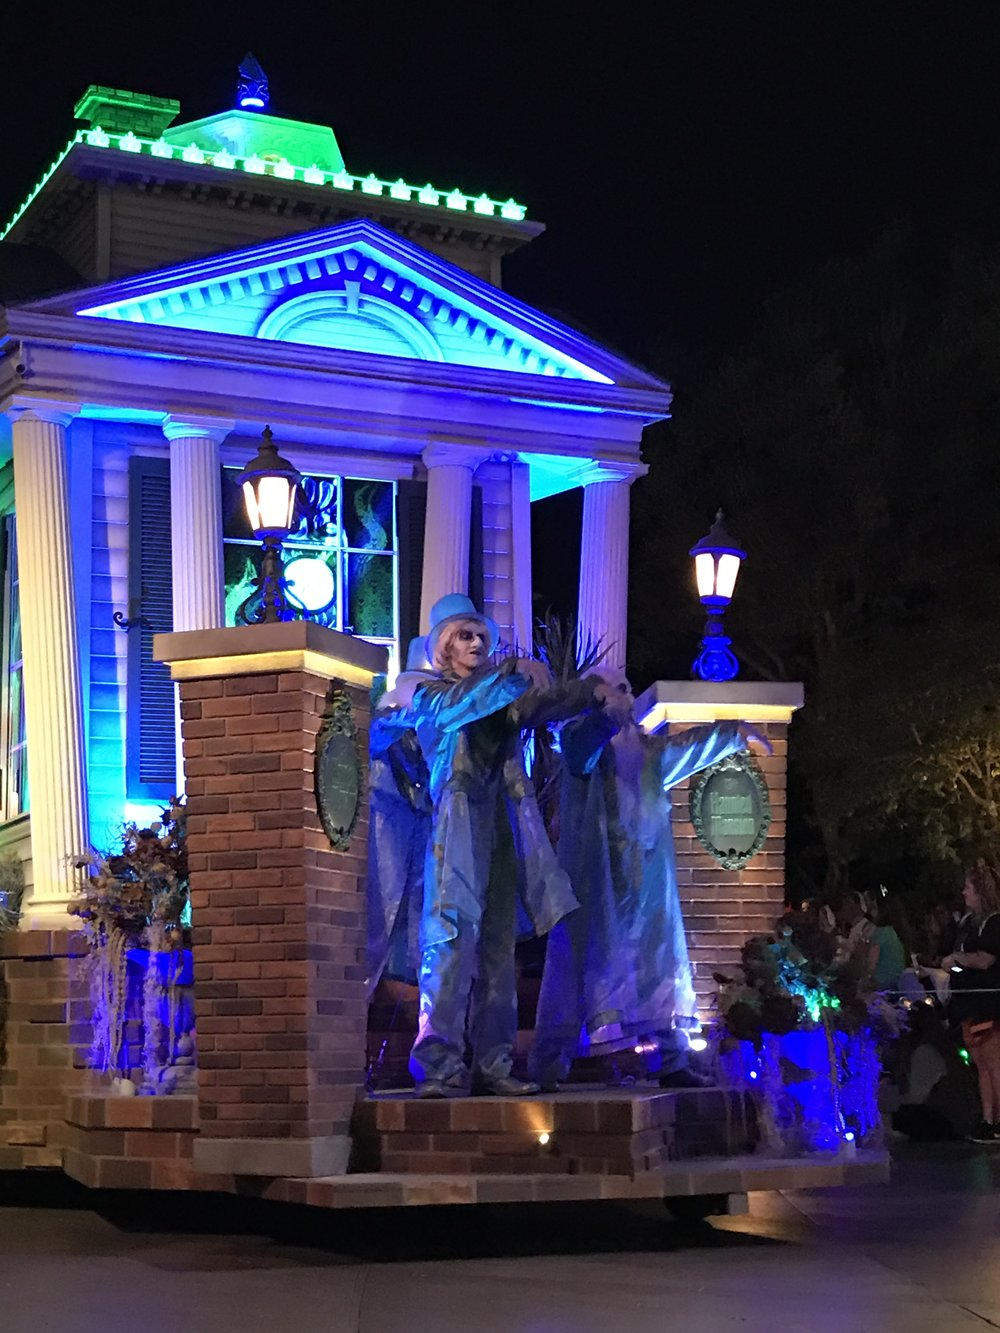 The Haunted Mansion float